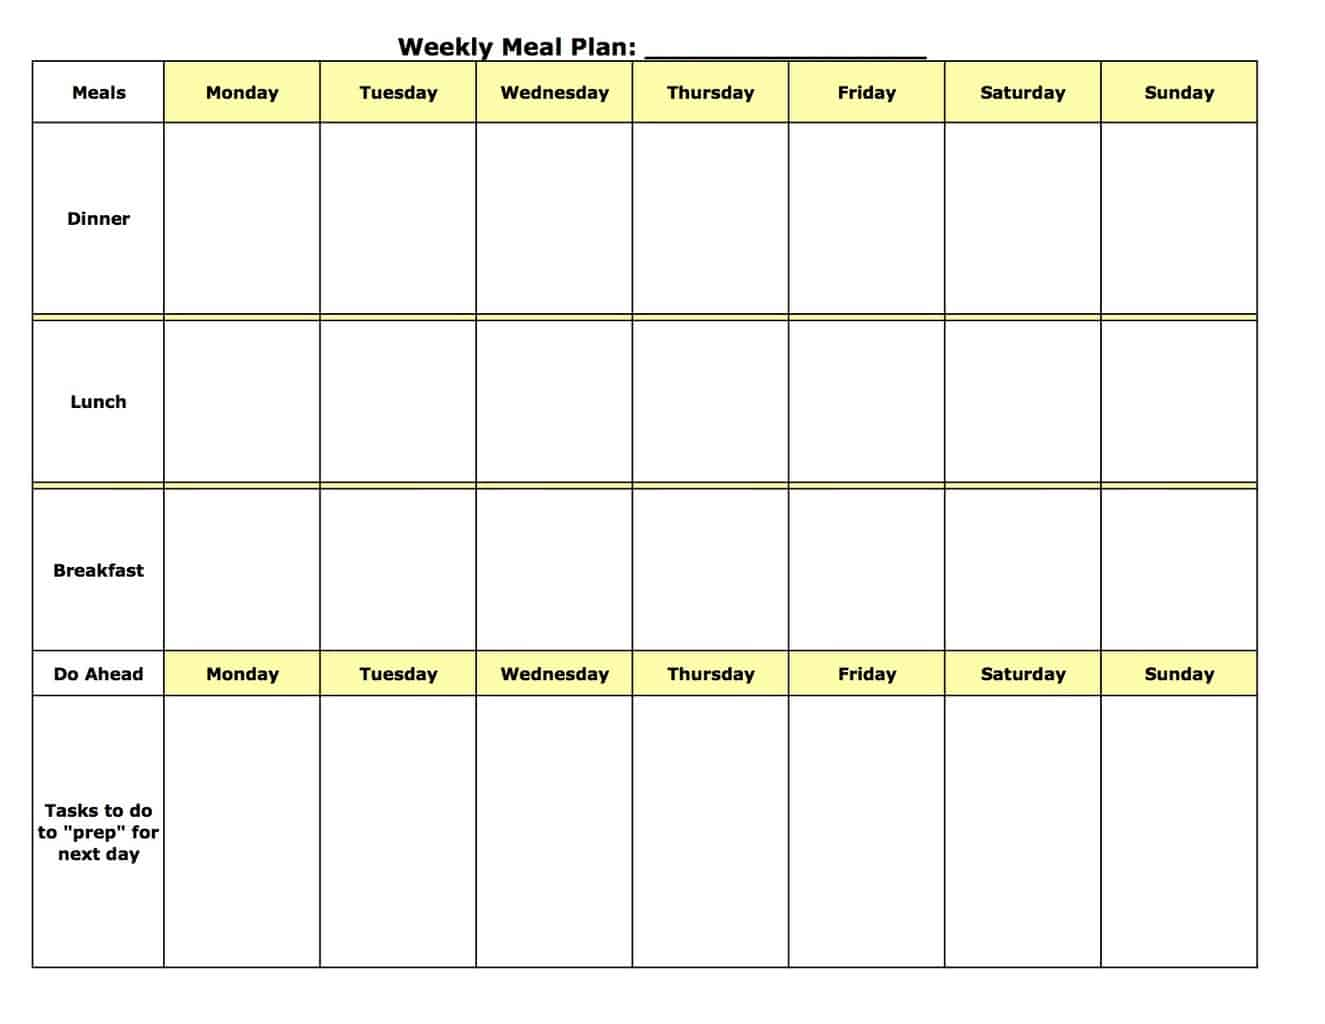 decided it was time to find or create a template for meal planning d8HQZUR7